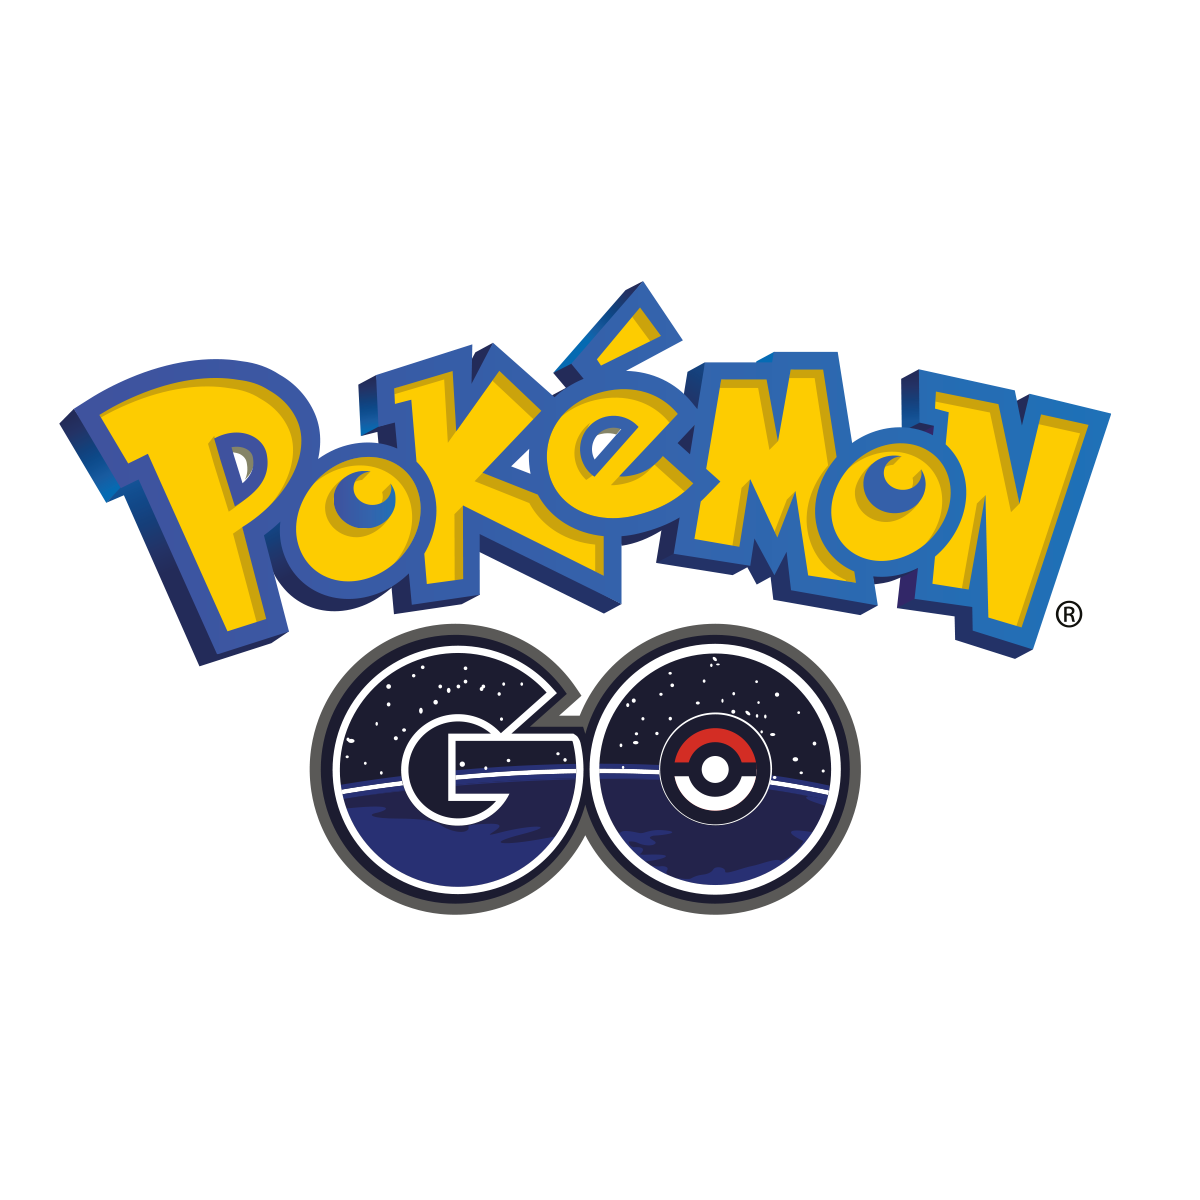 Future clipart release. Pokemon go releases in